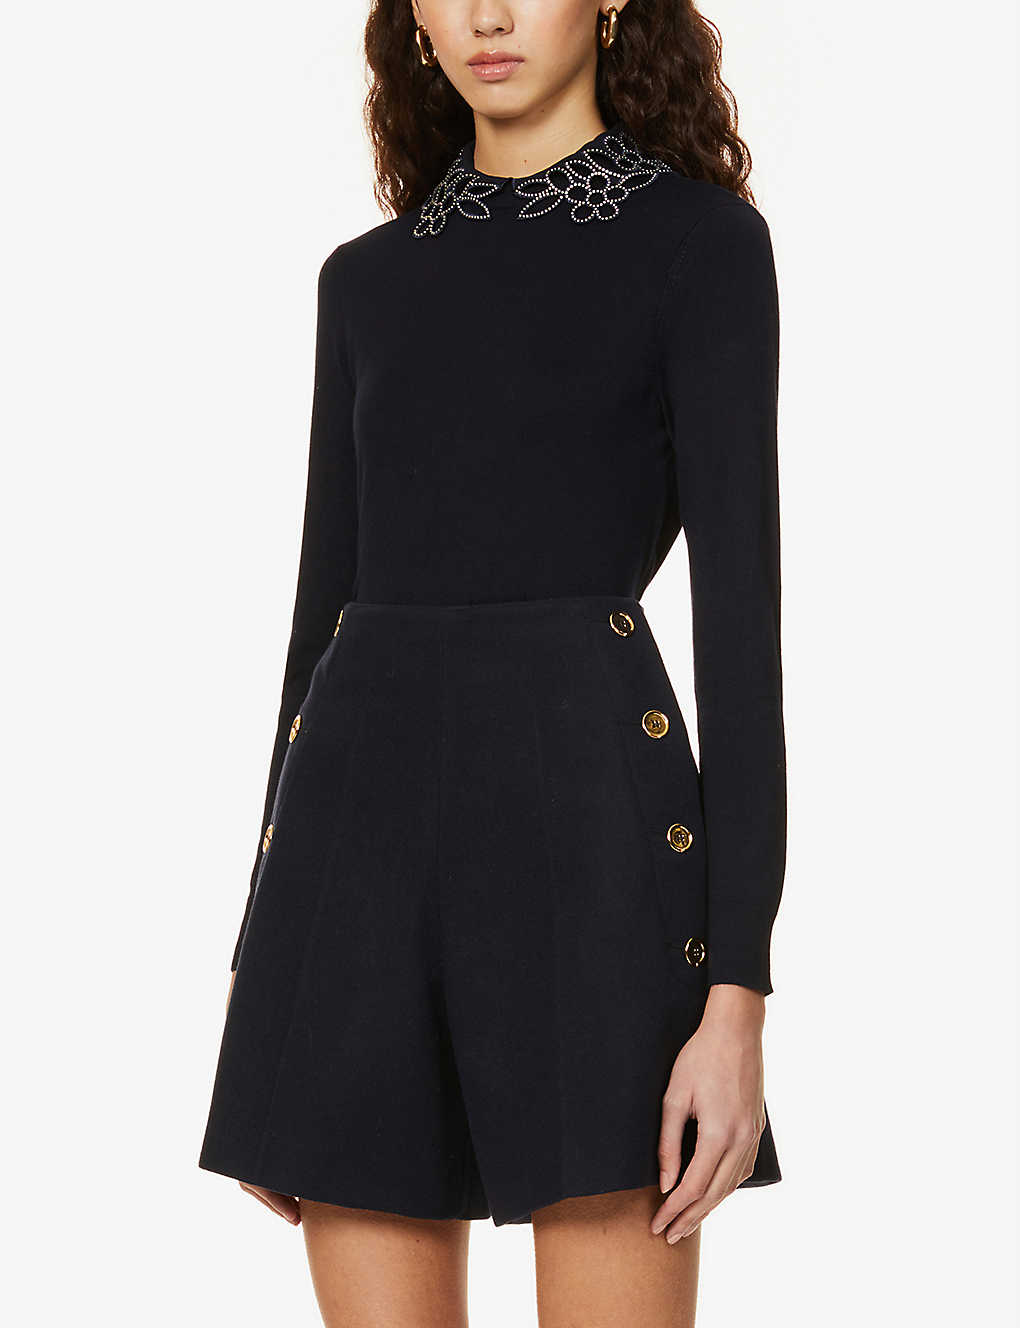 TED BAKER: Floral embellishment detail stretch-knit jumper